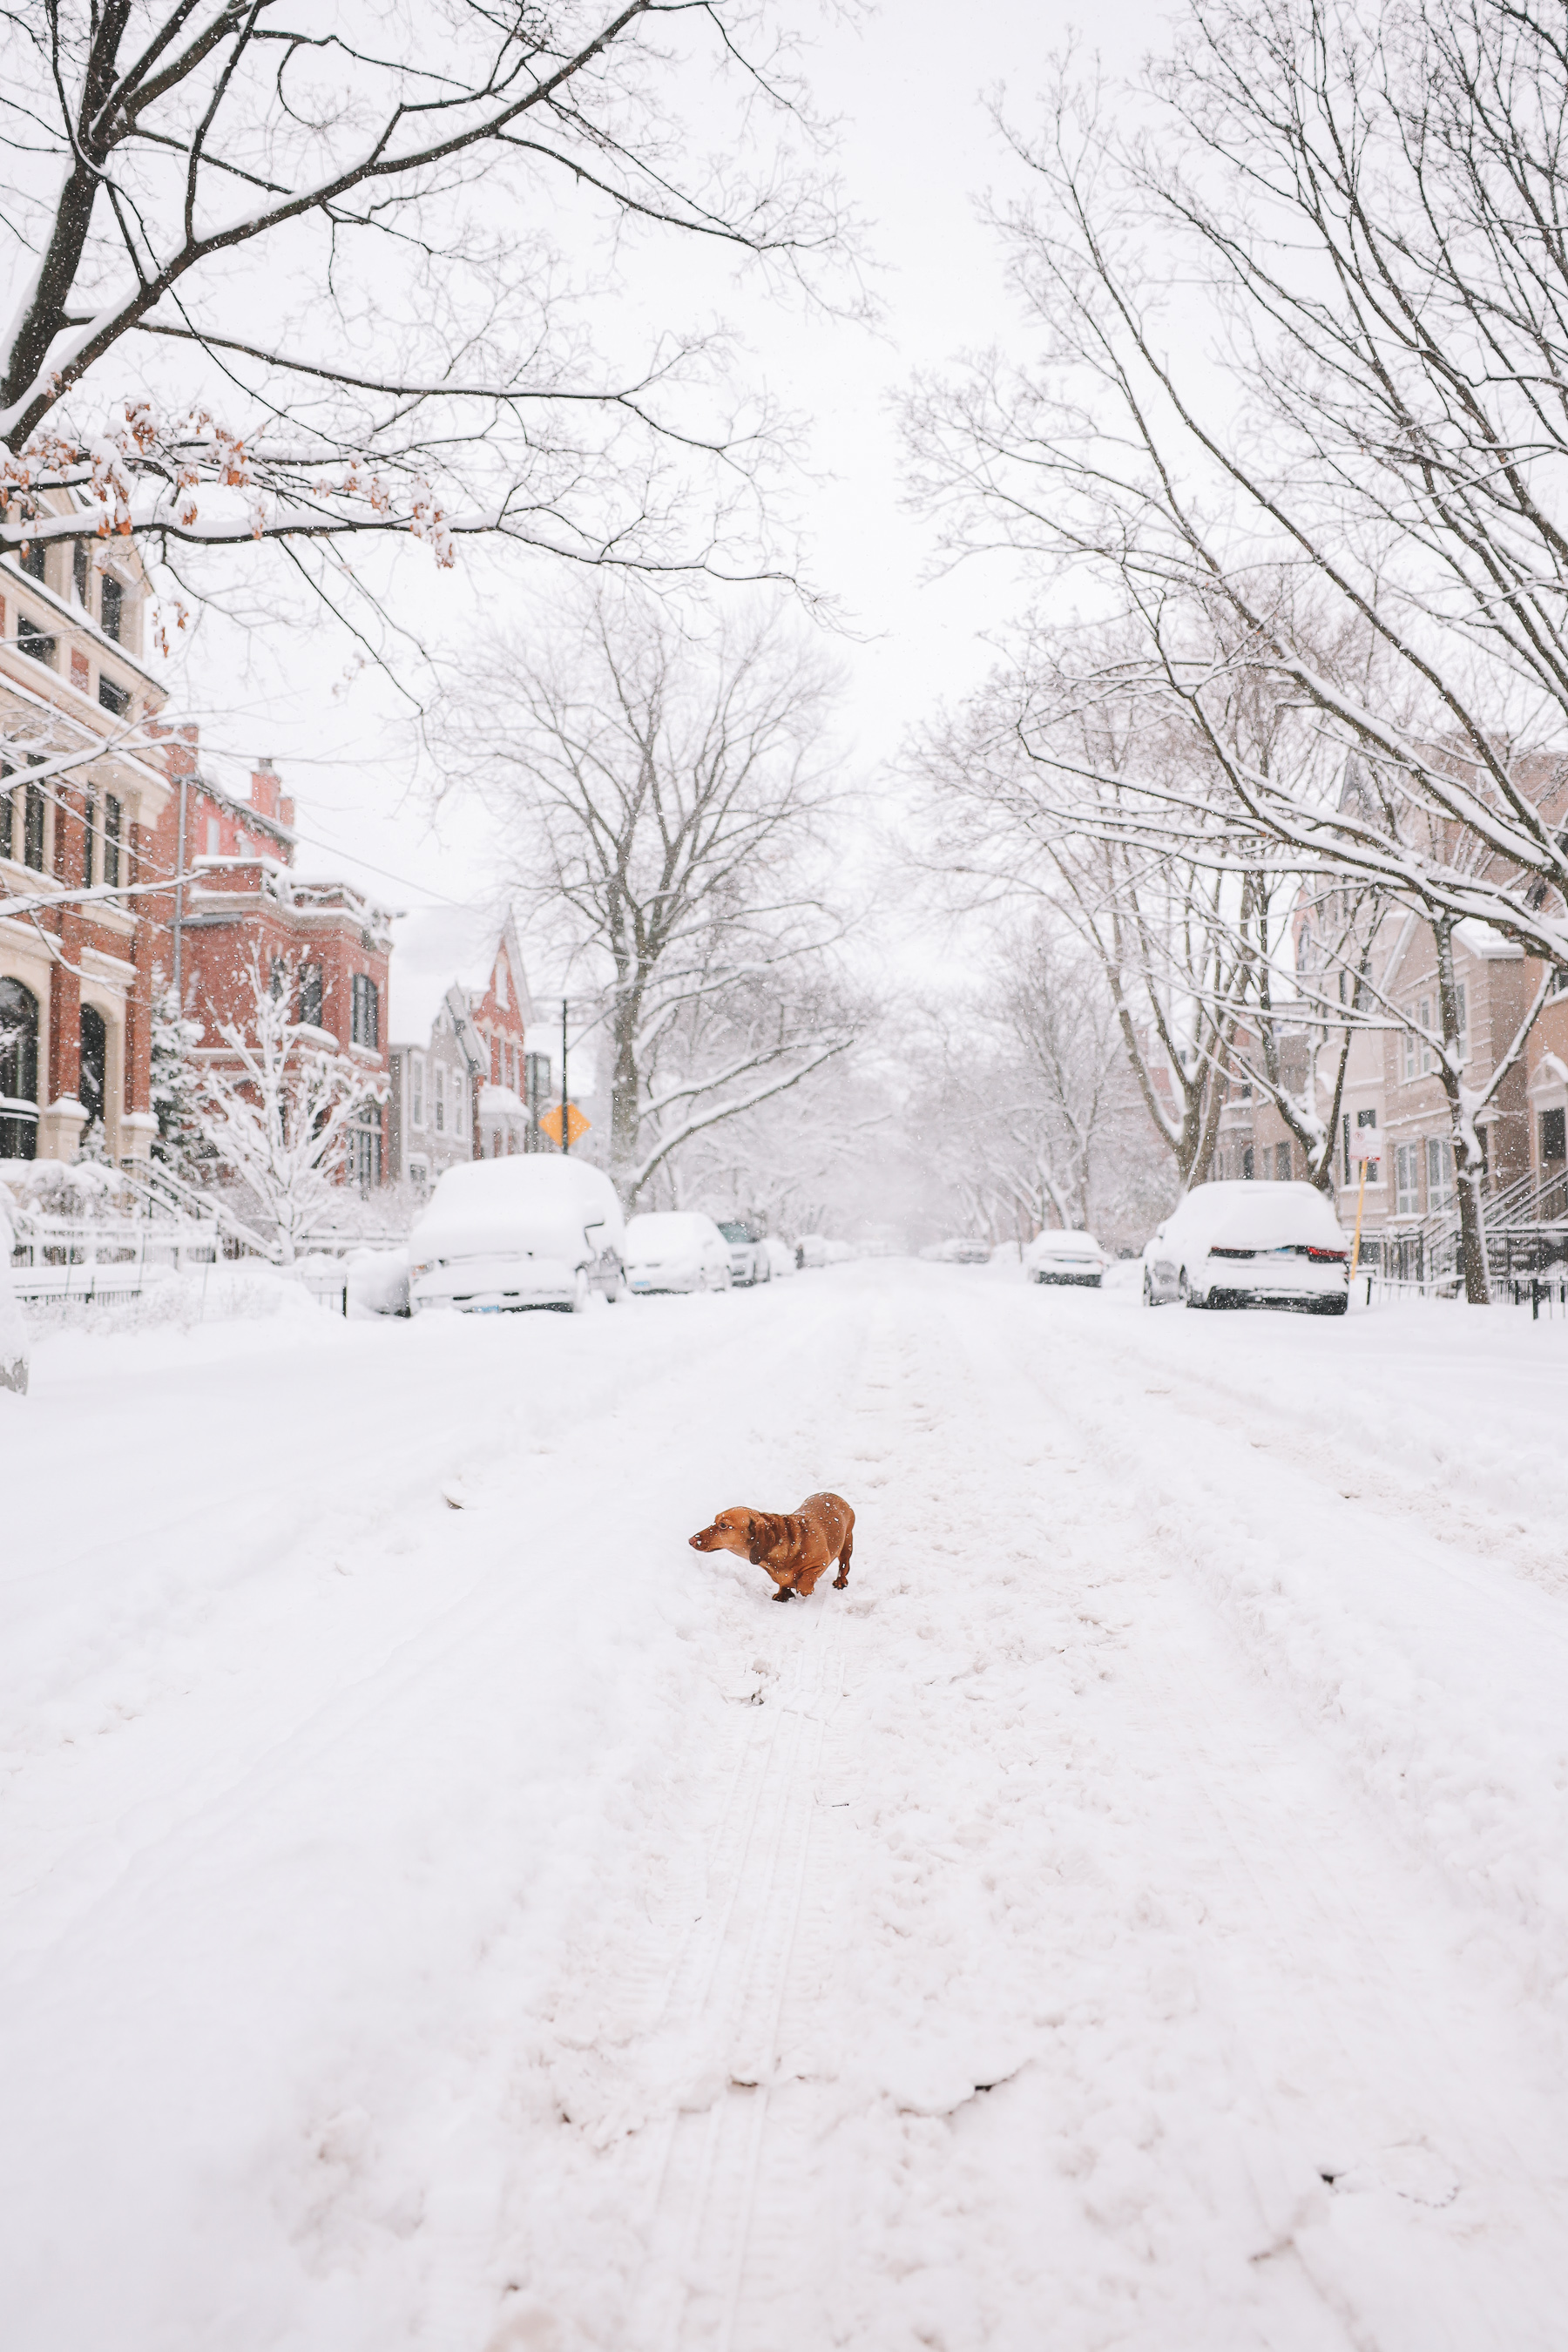 dog in the street covered in snow